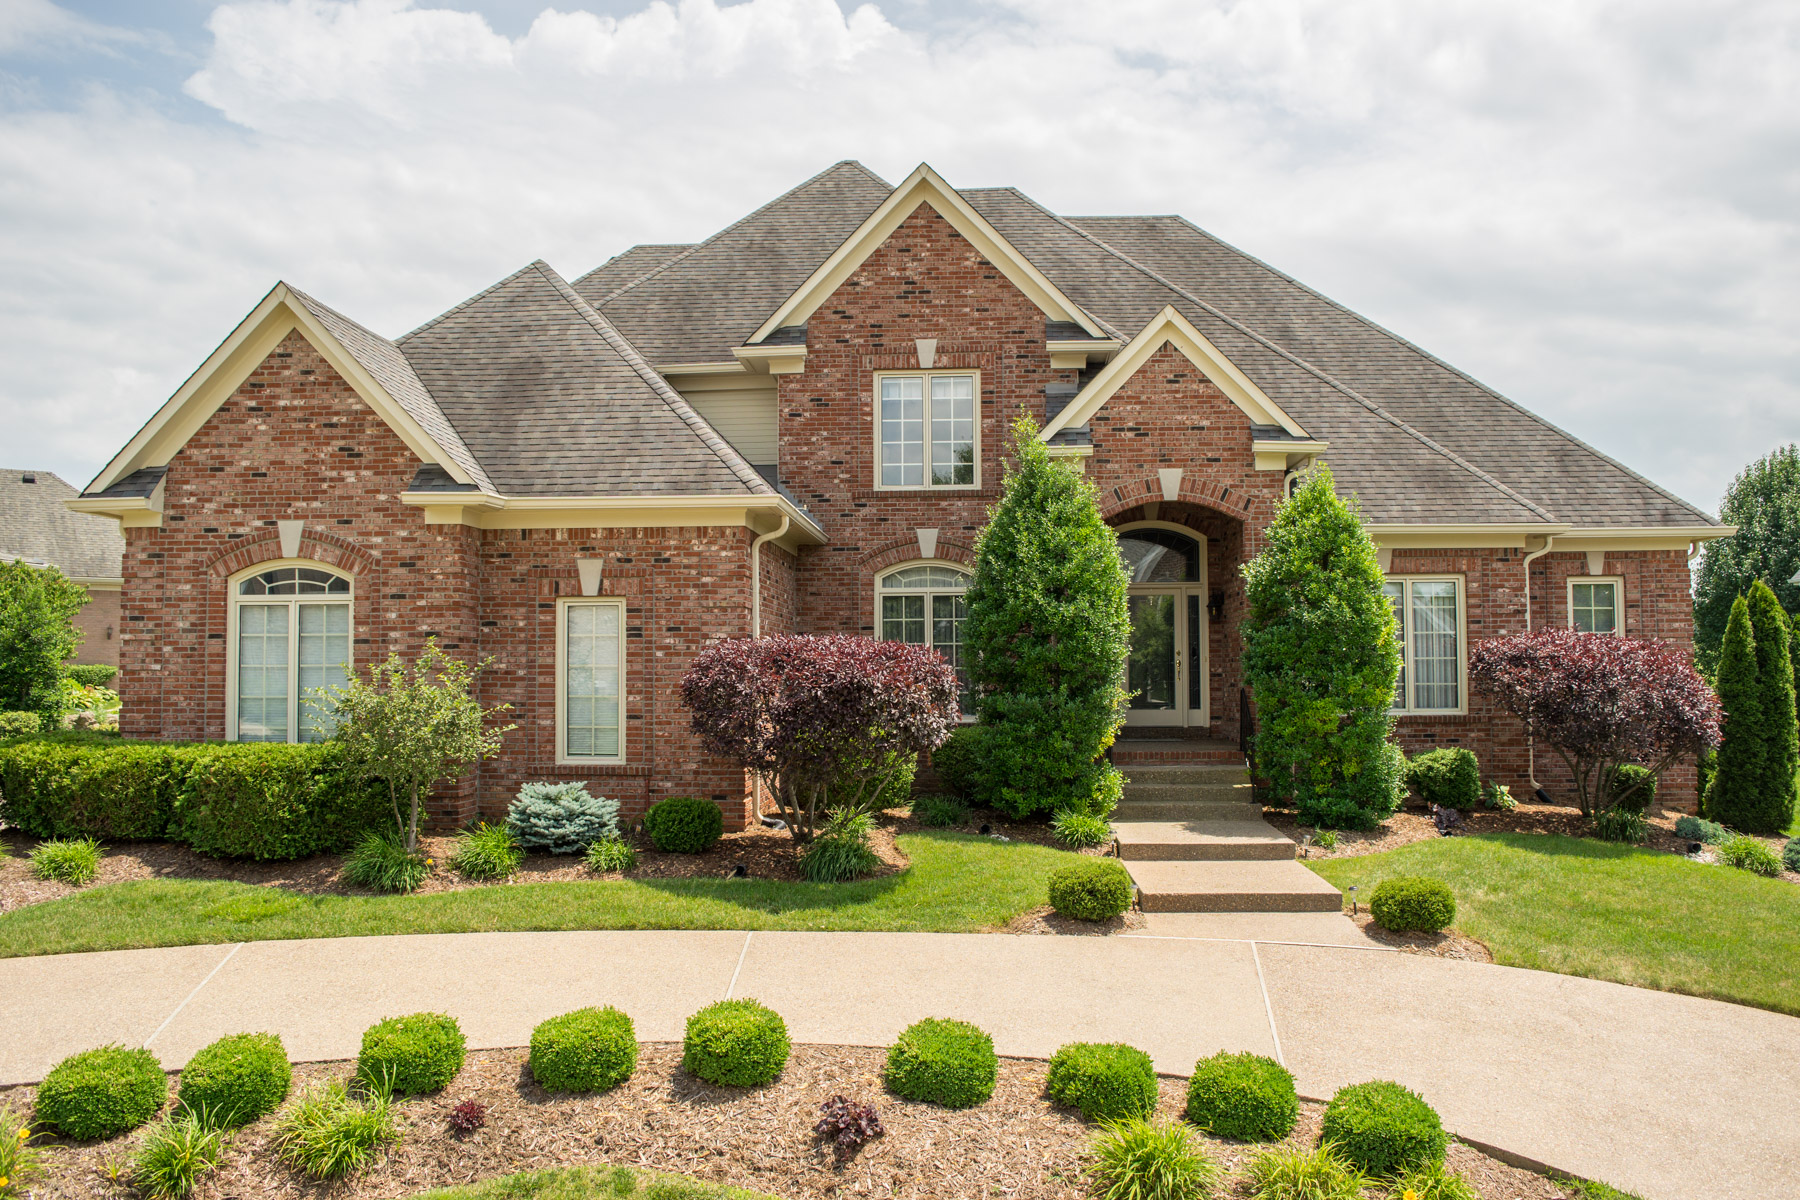 Single Family Home for Sale at 15207 Crystal Springs Way Louisville, Kentucky 40245 United States